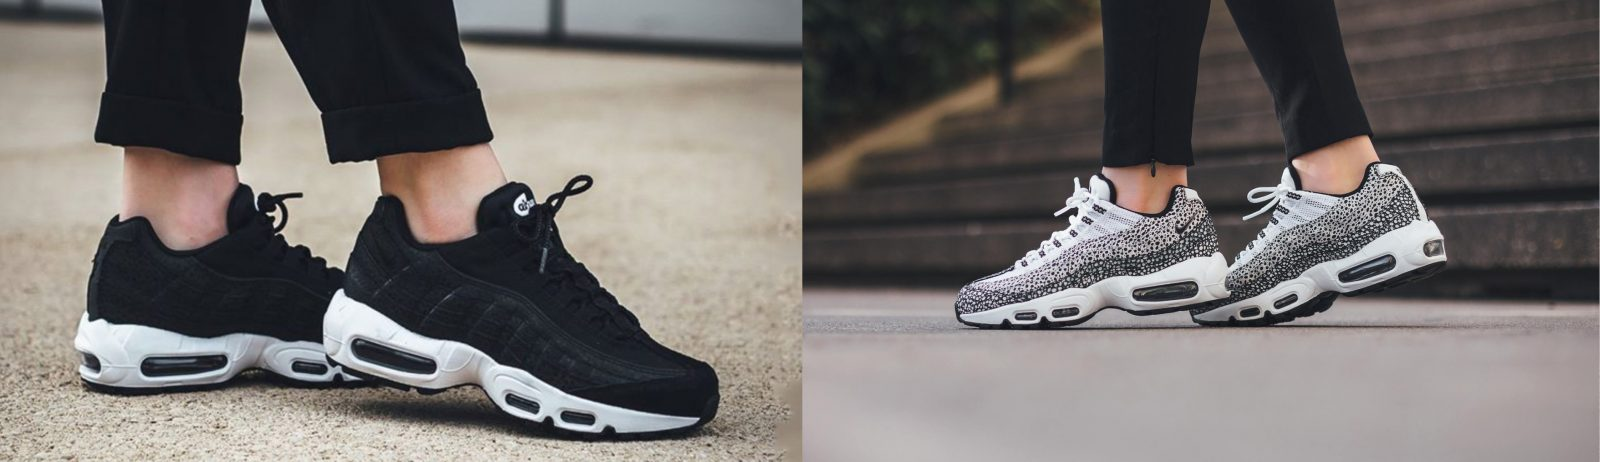 Women's Nike Air Max 95 Trainers